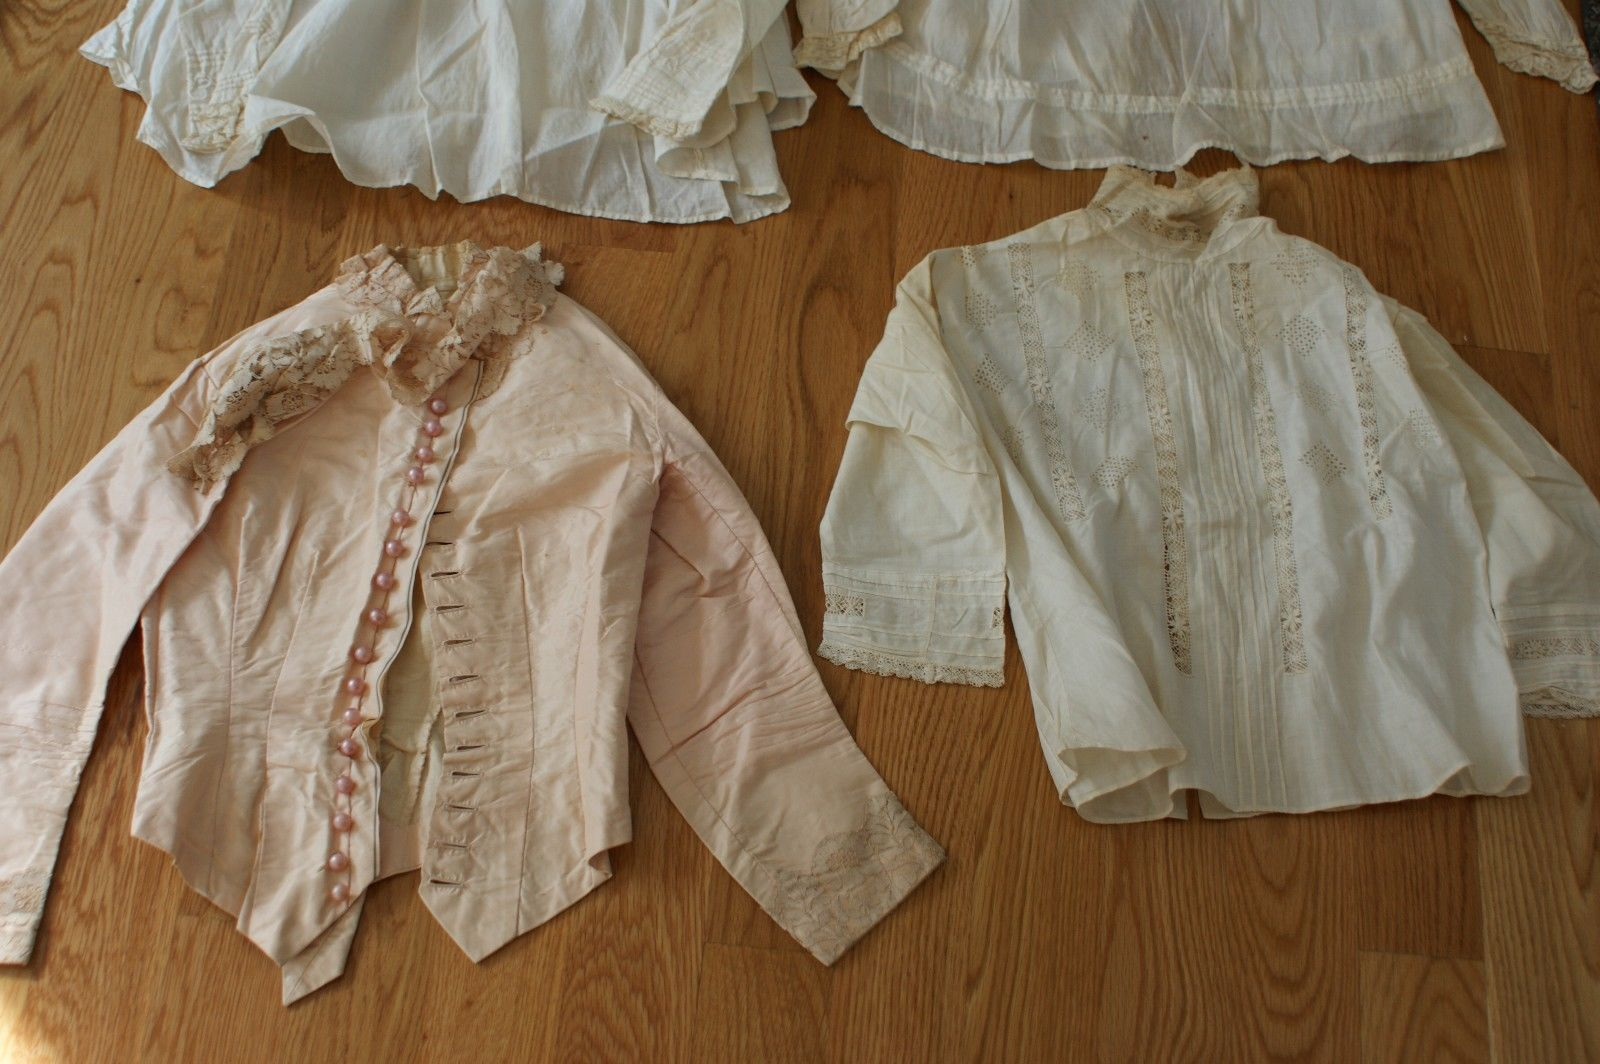 All The Pretty Dresses: Victorian and Edwardian Bodice and